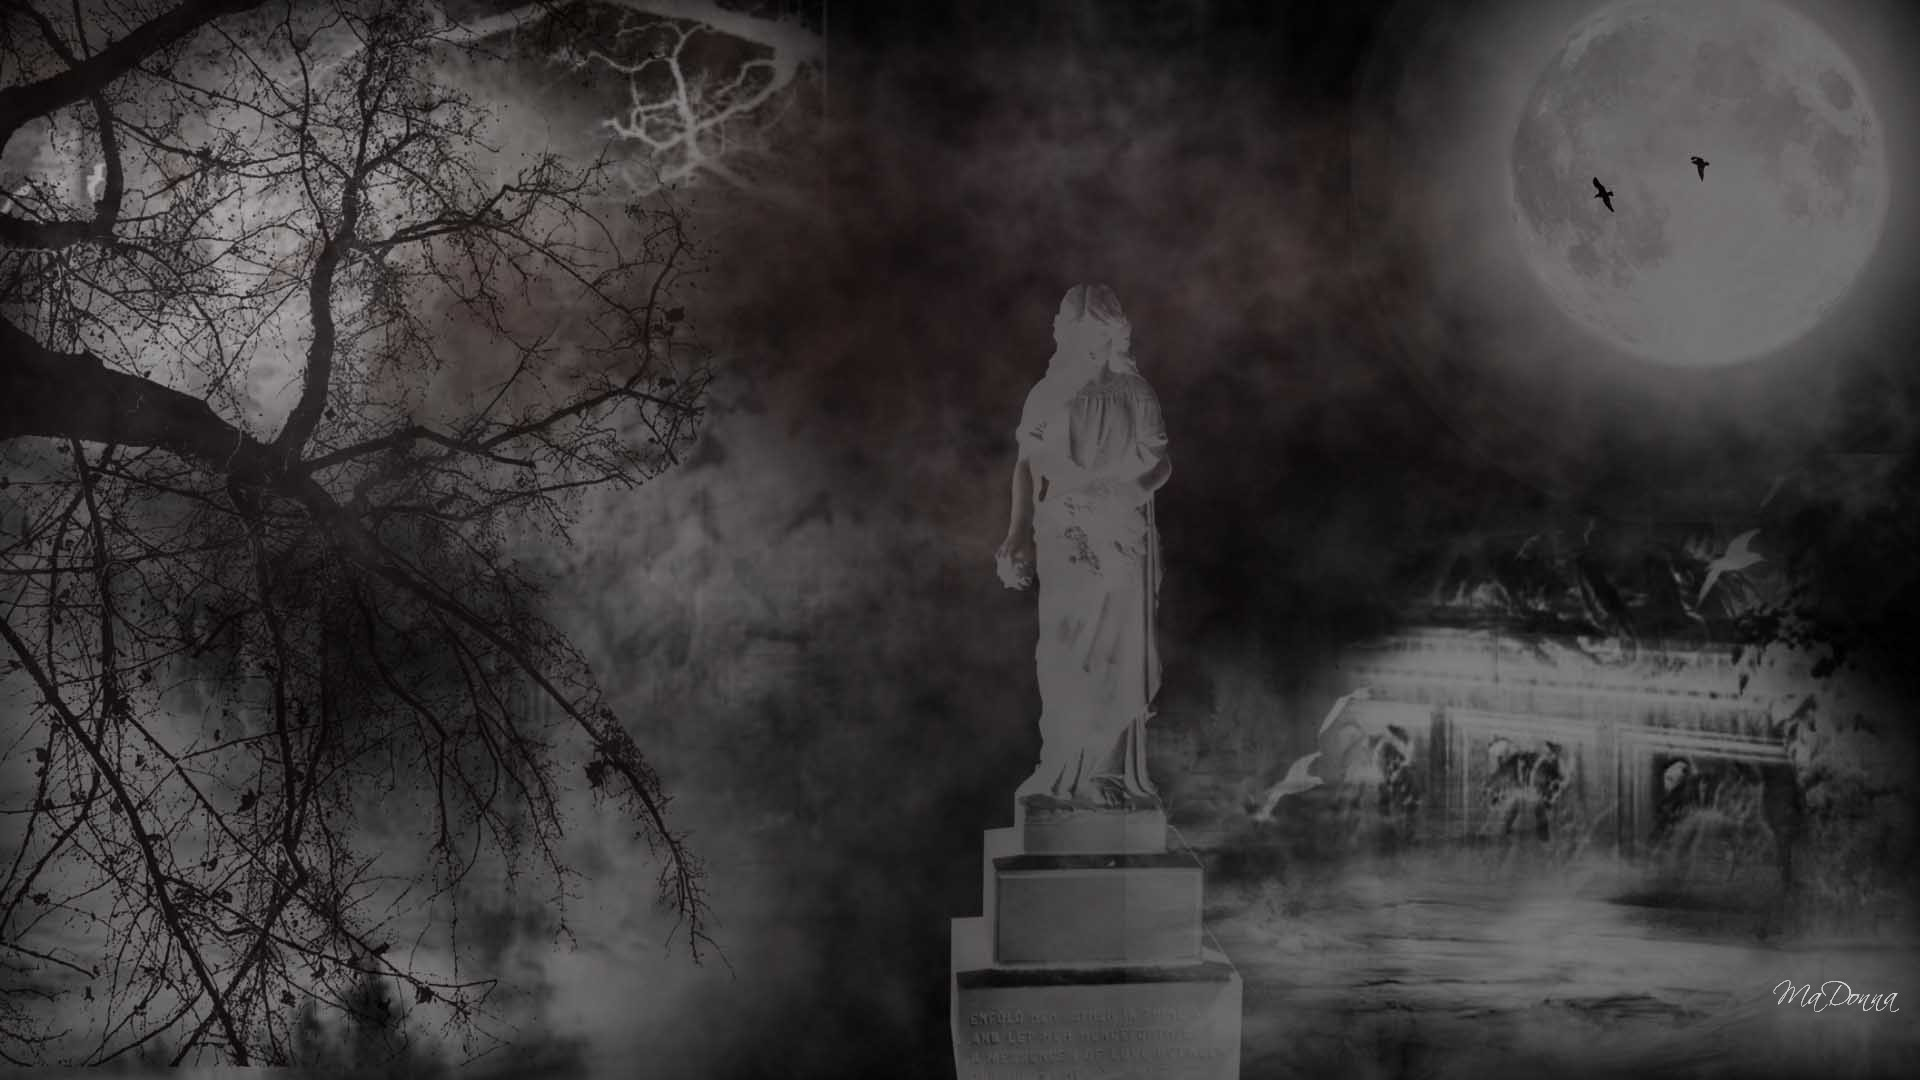 33 BCemetery HD Wallpapers B